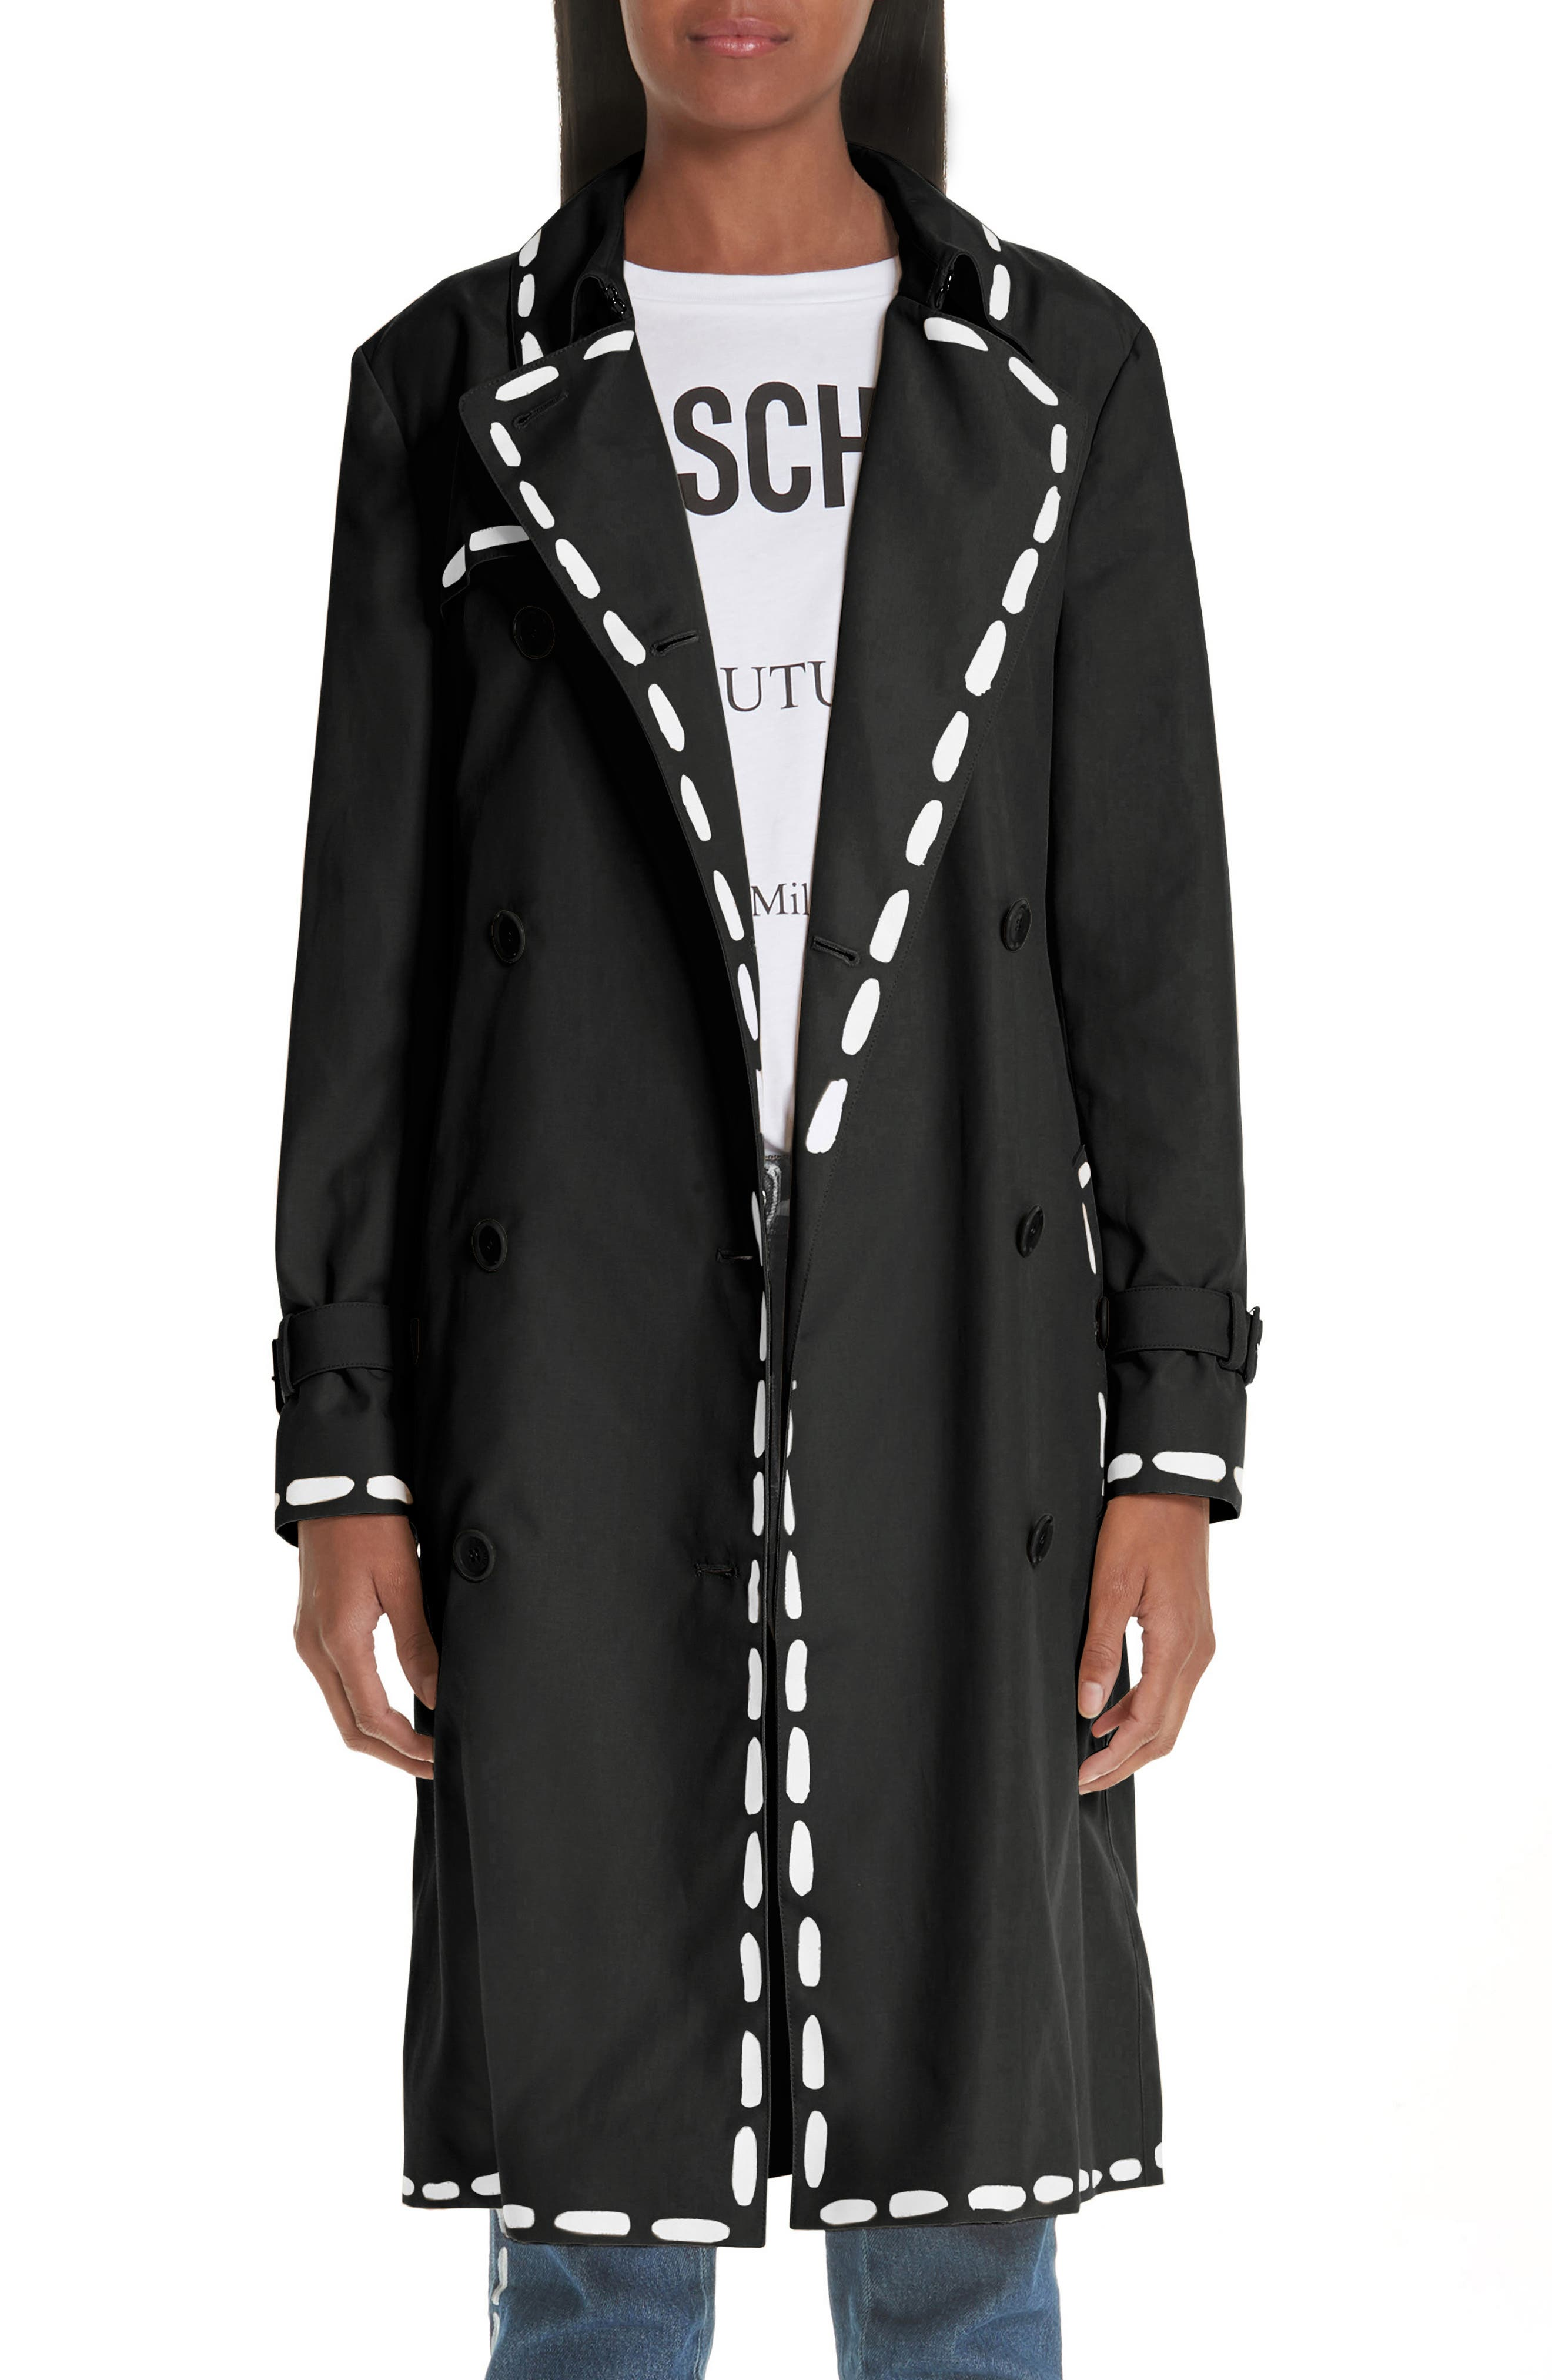 MOSCHINO, Dotted Line Trench Coat, Main thumbnail 1, color, BLACK